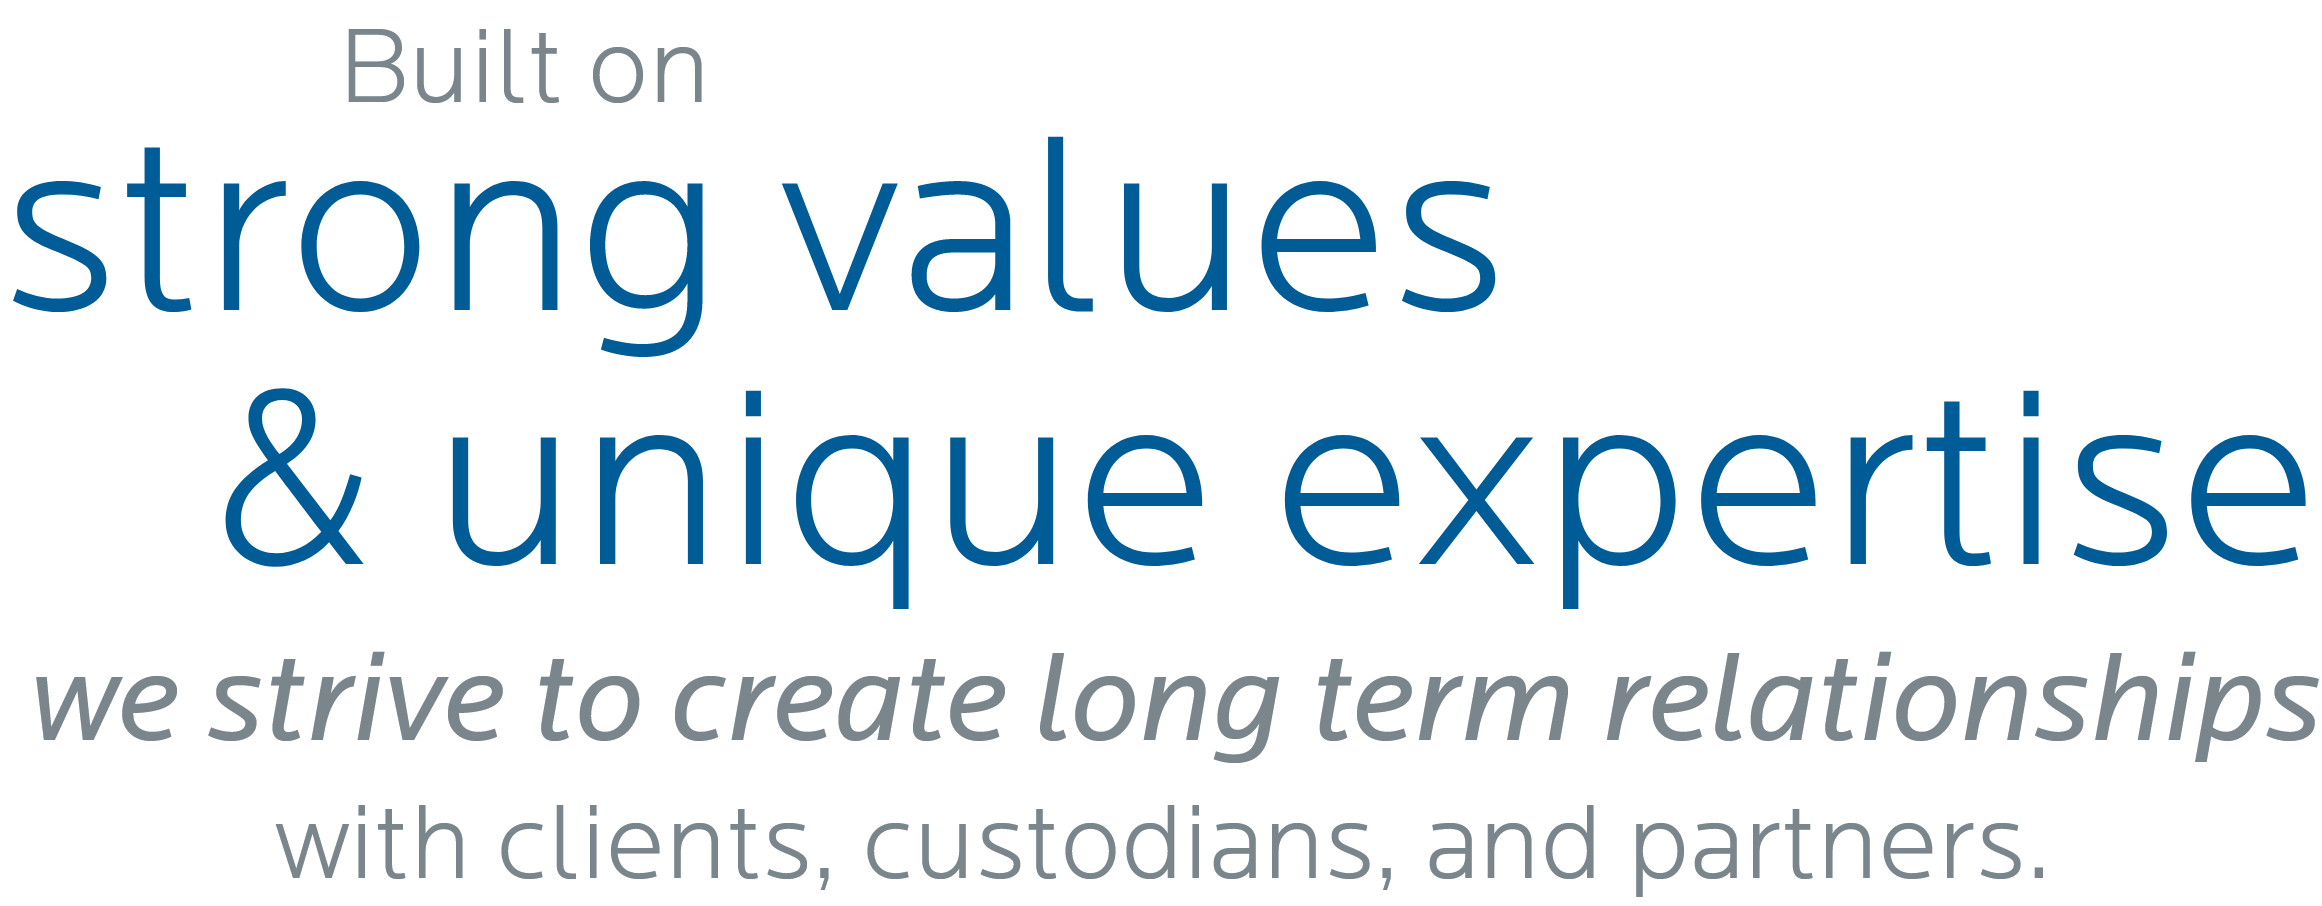 Built on strong values & unique expertise - we strive to create long term relationships with clients, custodians, and partners.